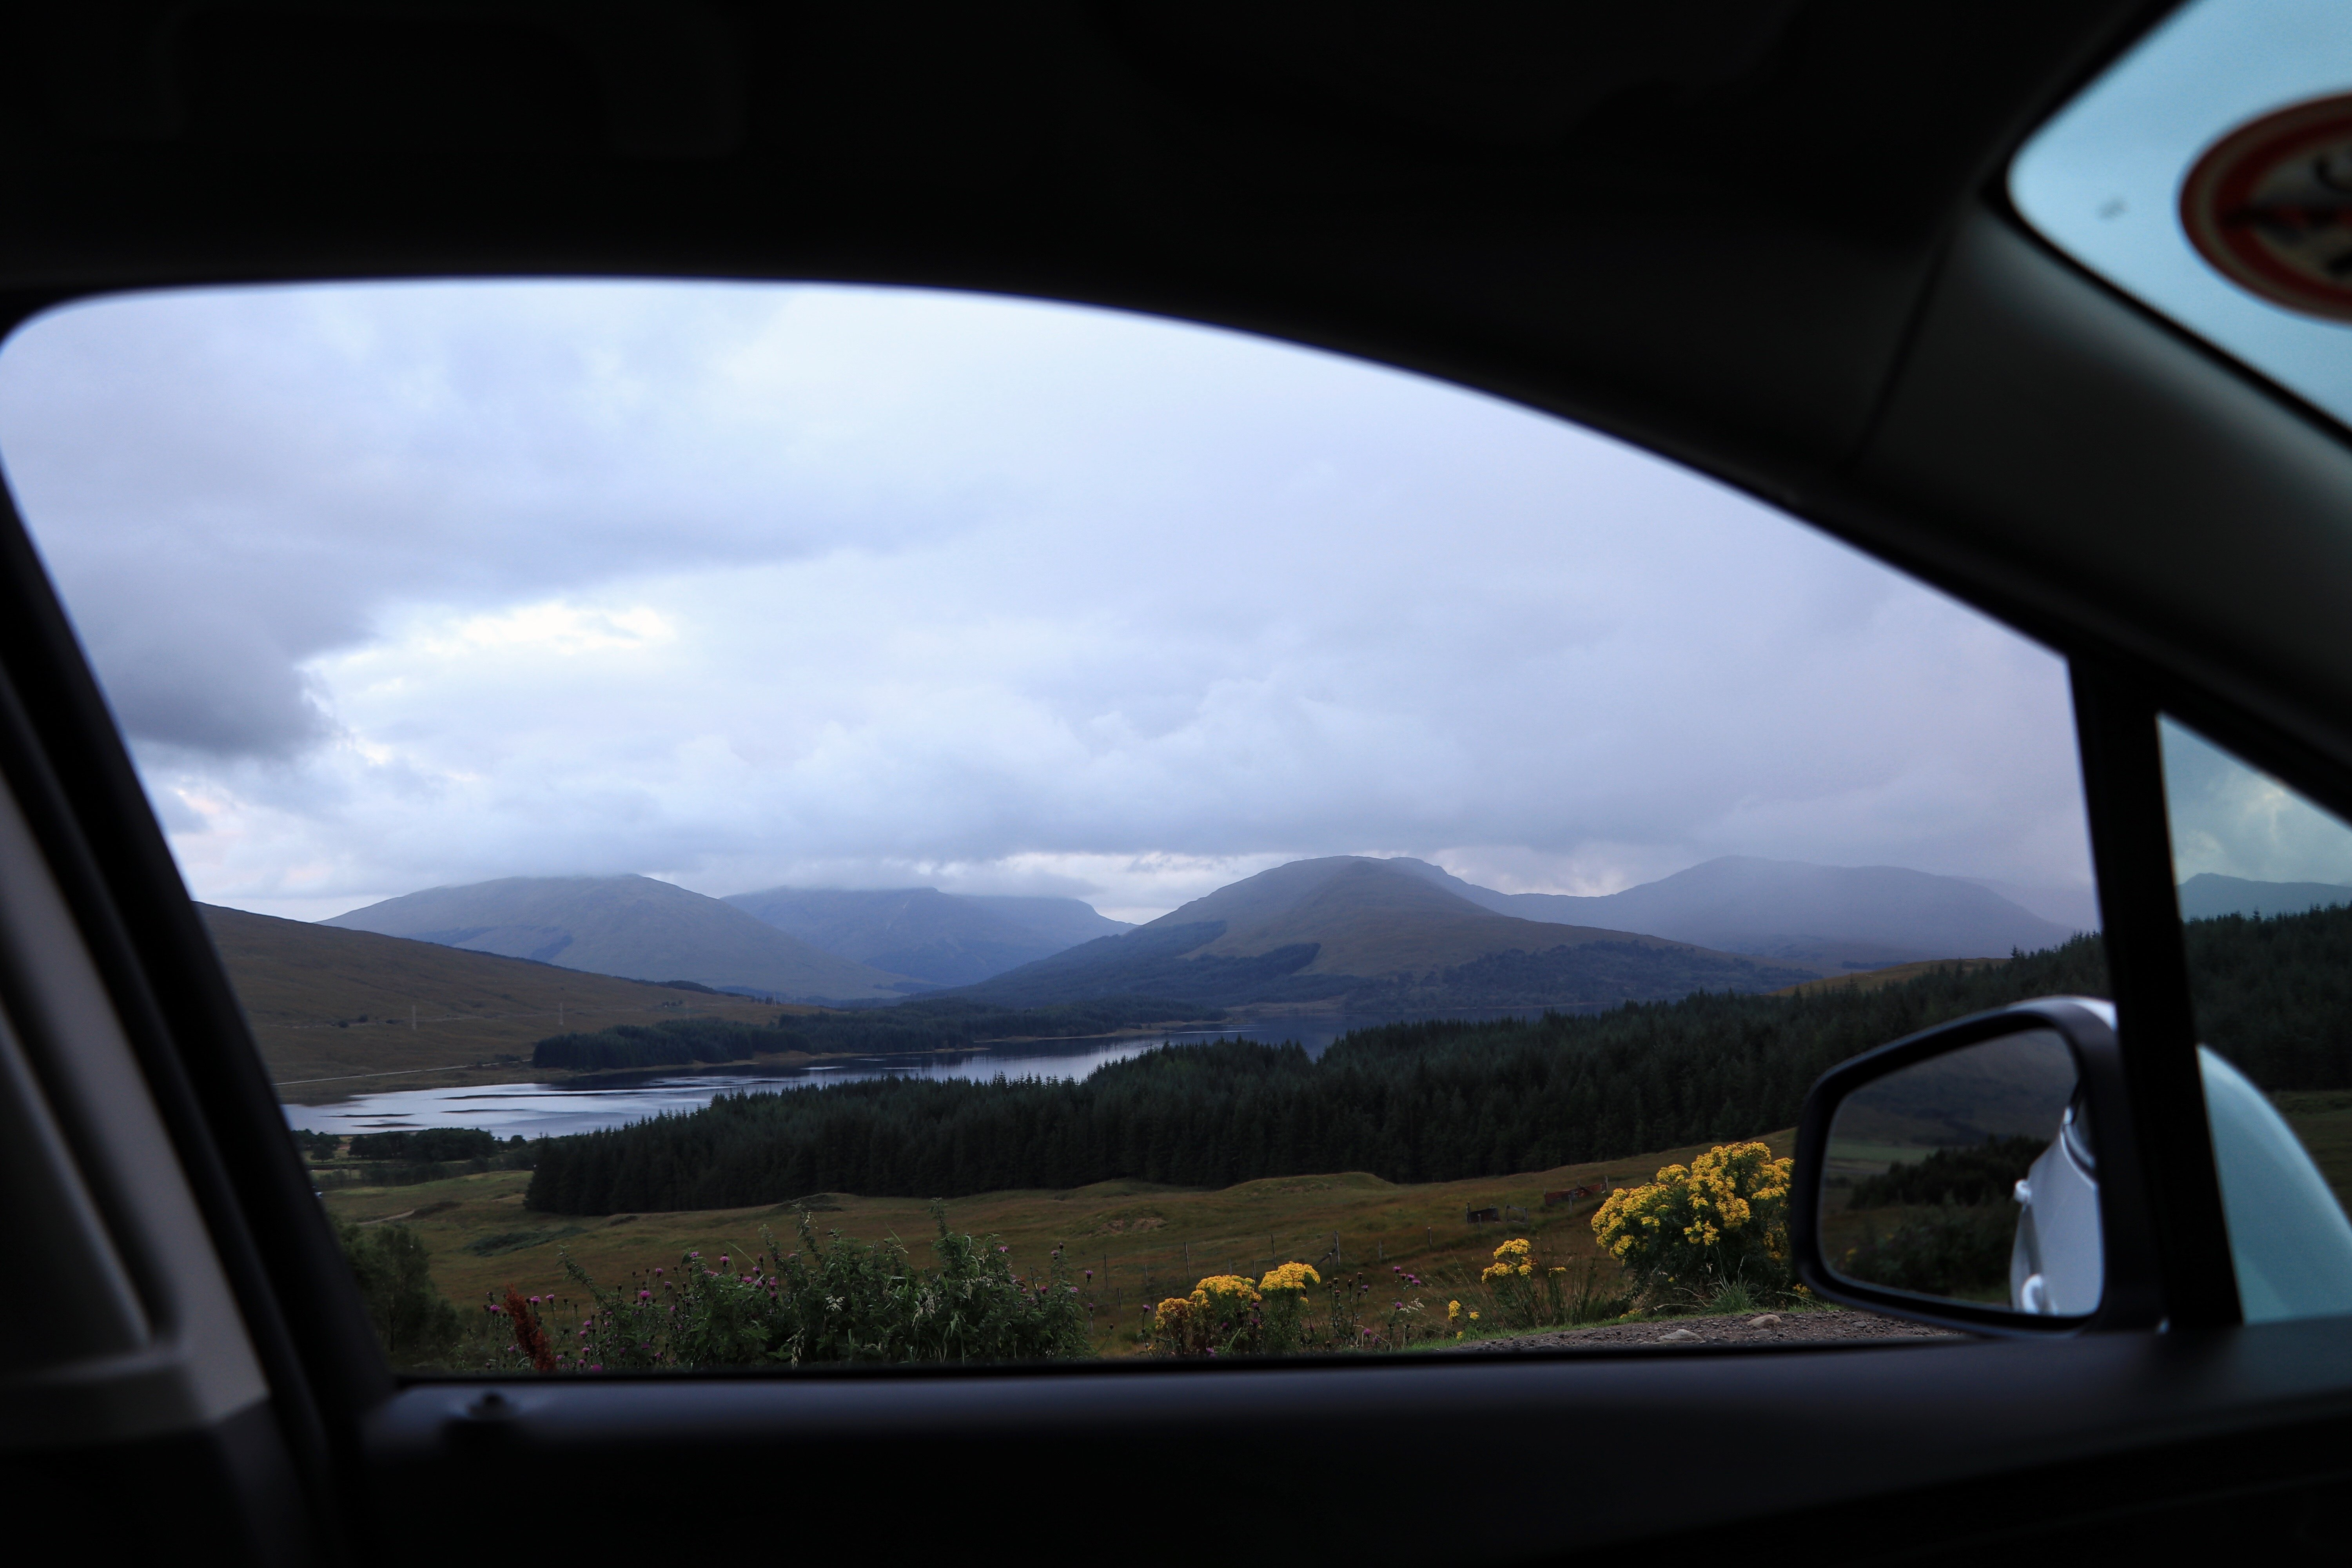 View of the Highlands from the window of the rental ECF